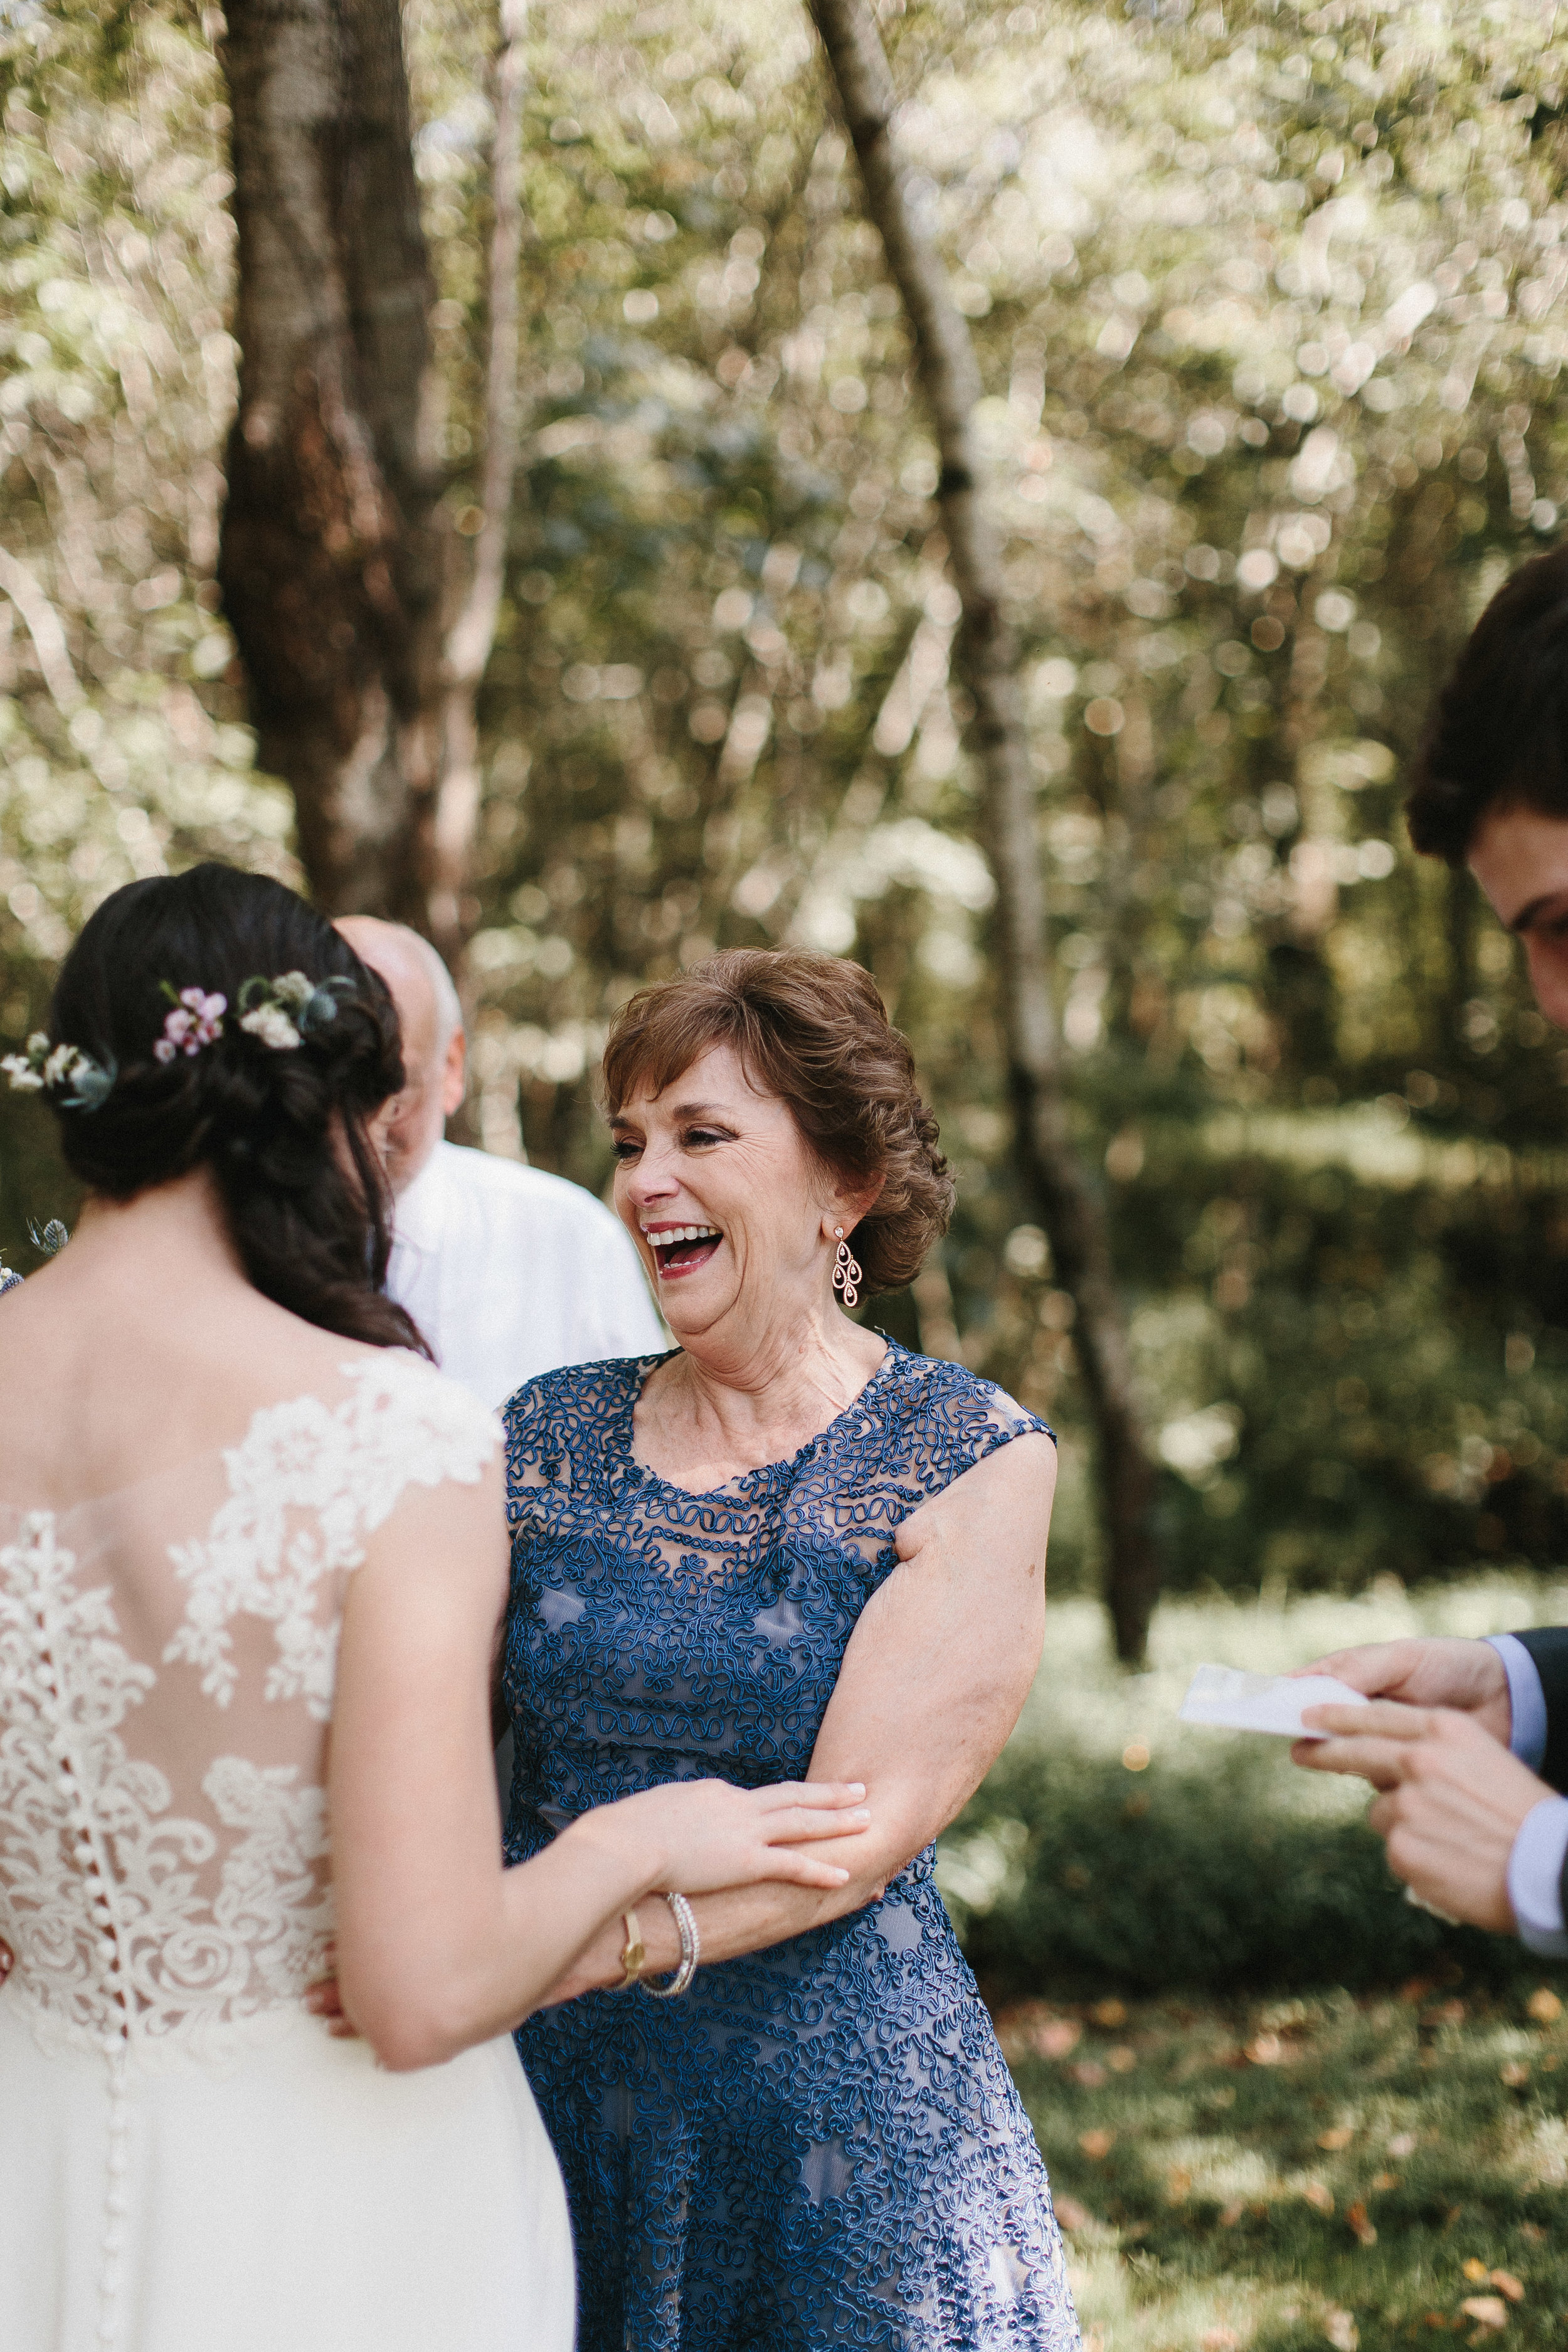 cleveland_georgia_mountain_laurel_farm_natural_classic_timeless_documentary_candid_wedding_emotional_photojournalism_river_west_1304.jpg